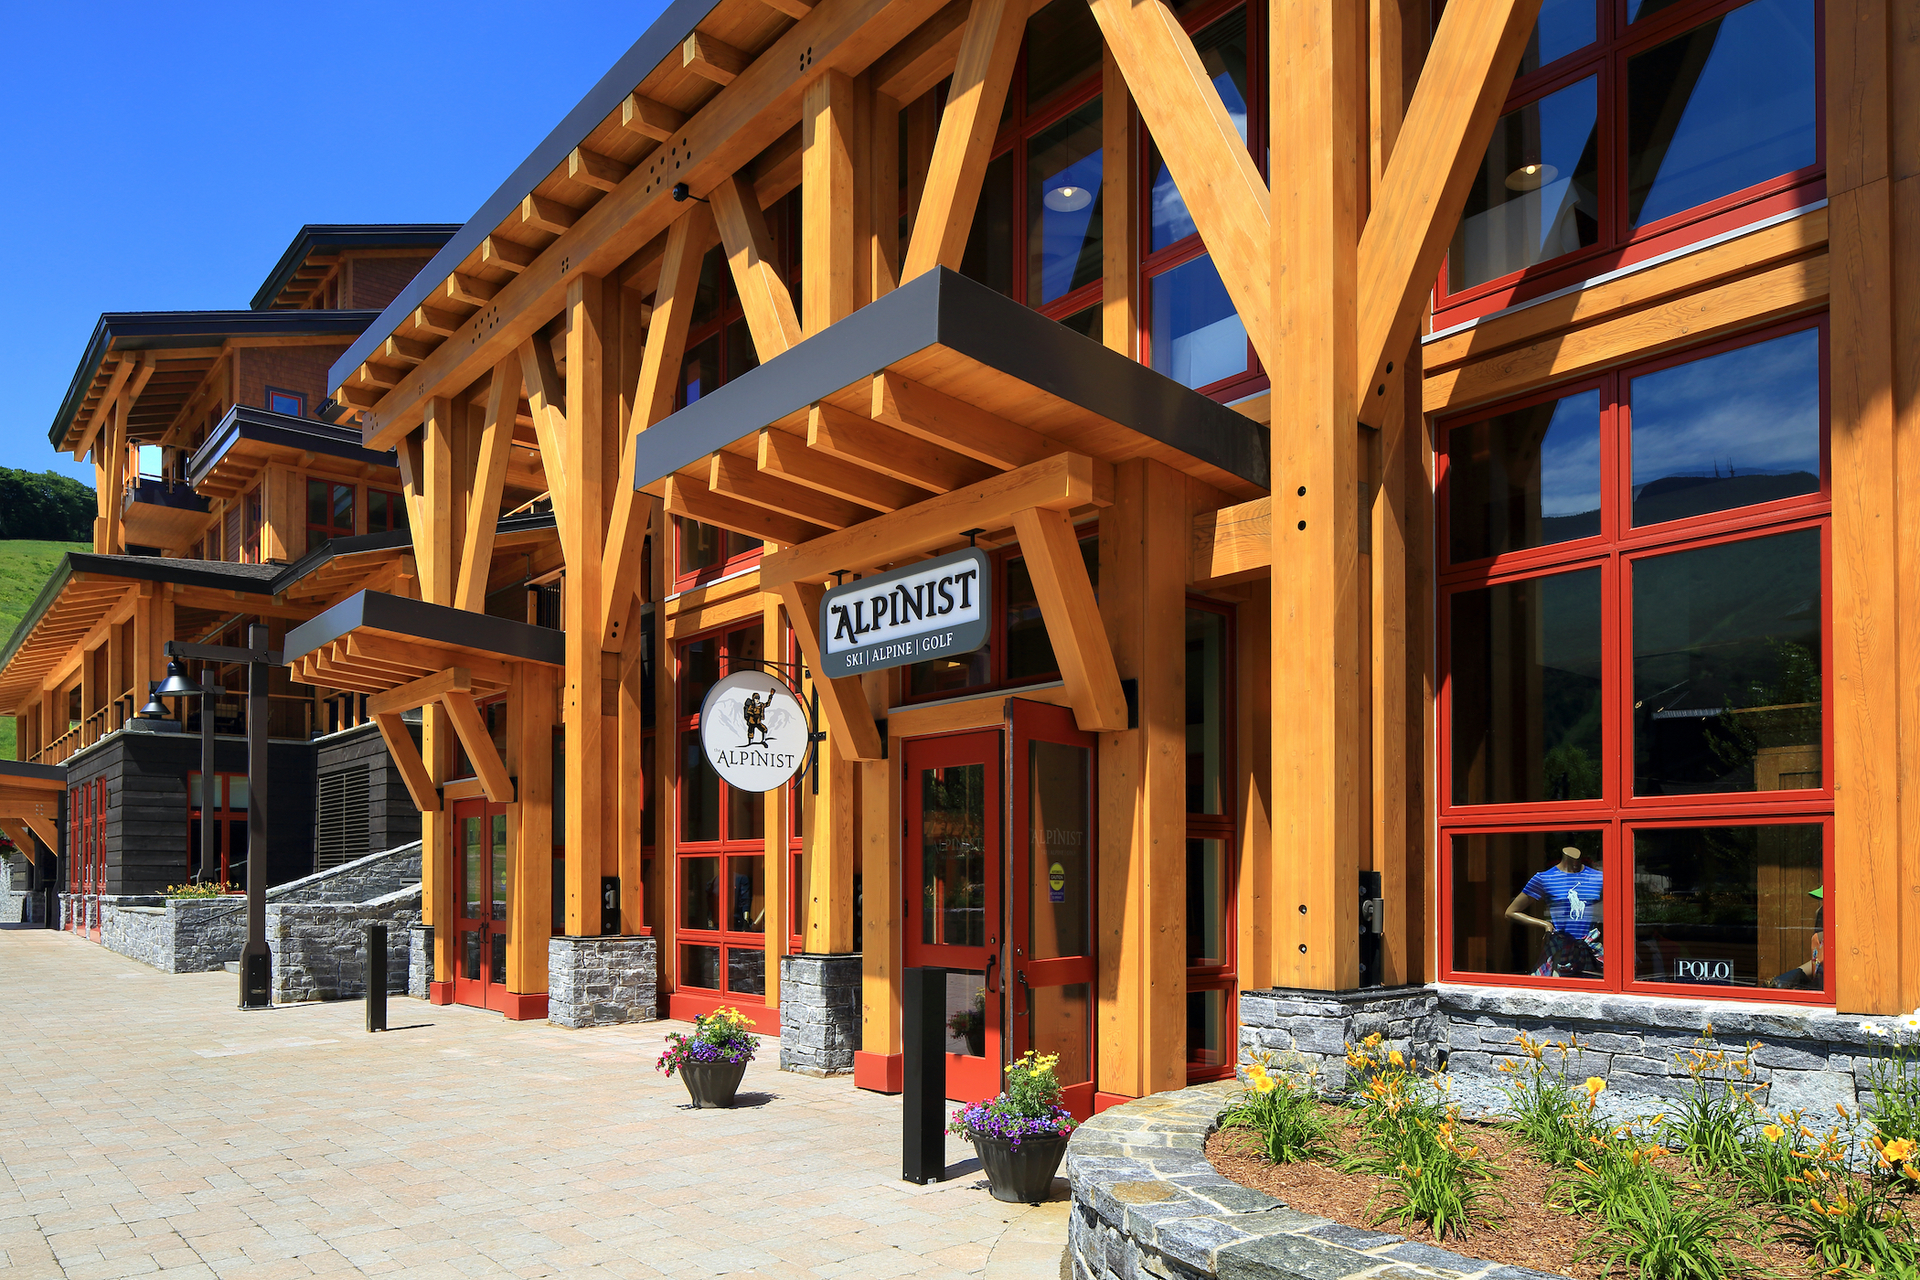 Pella provided aluminum-clad window systems for the Spruce Peak project to accomplish a unique color scheme that reflects the branding and style of the resort.